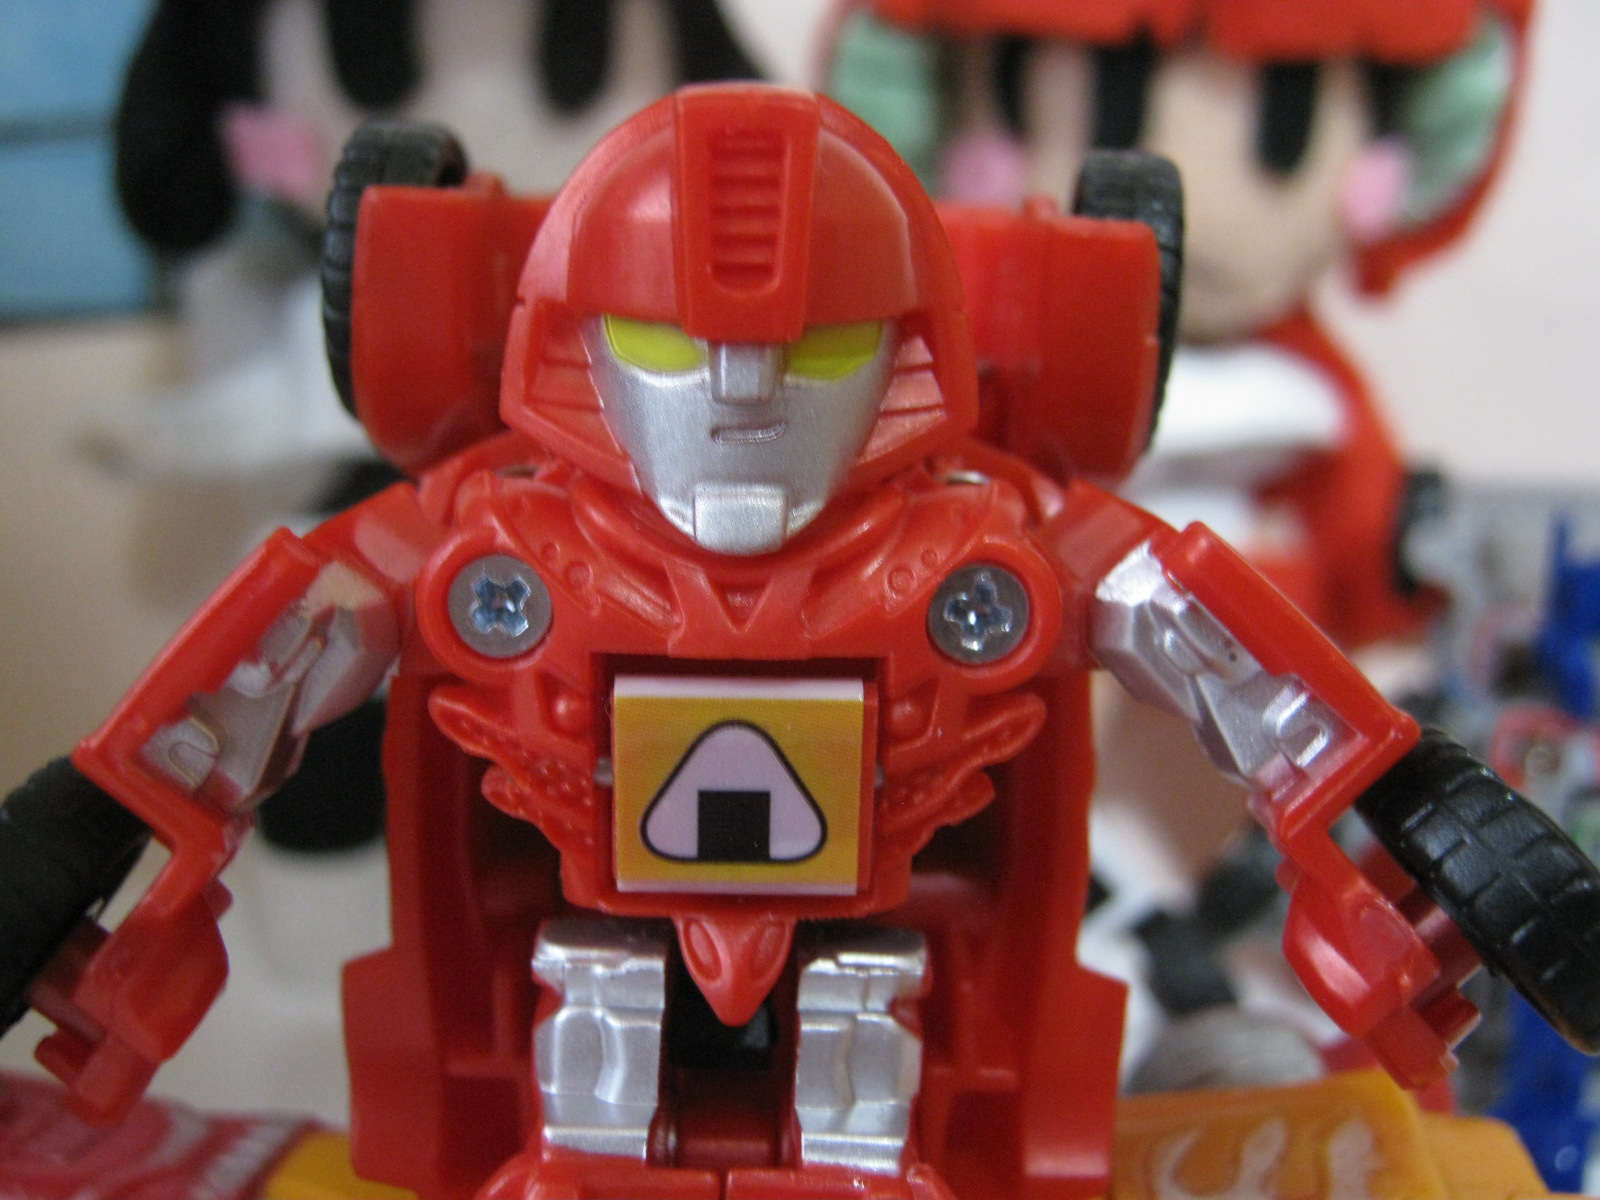 transformers takara tomy toy Be cool japan bot shots red mirage face おにぎり